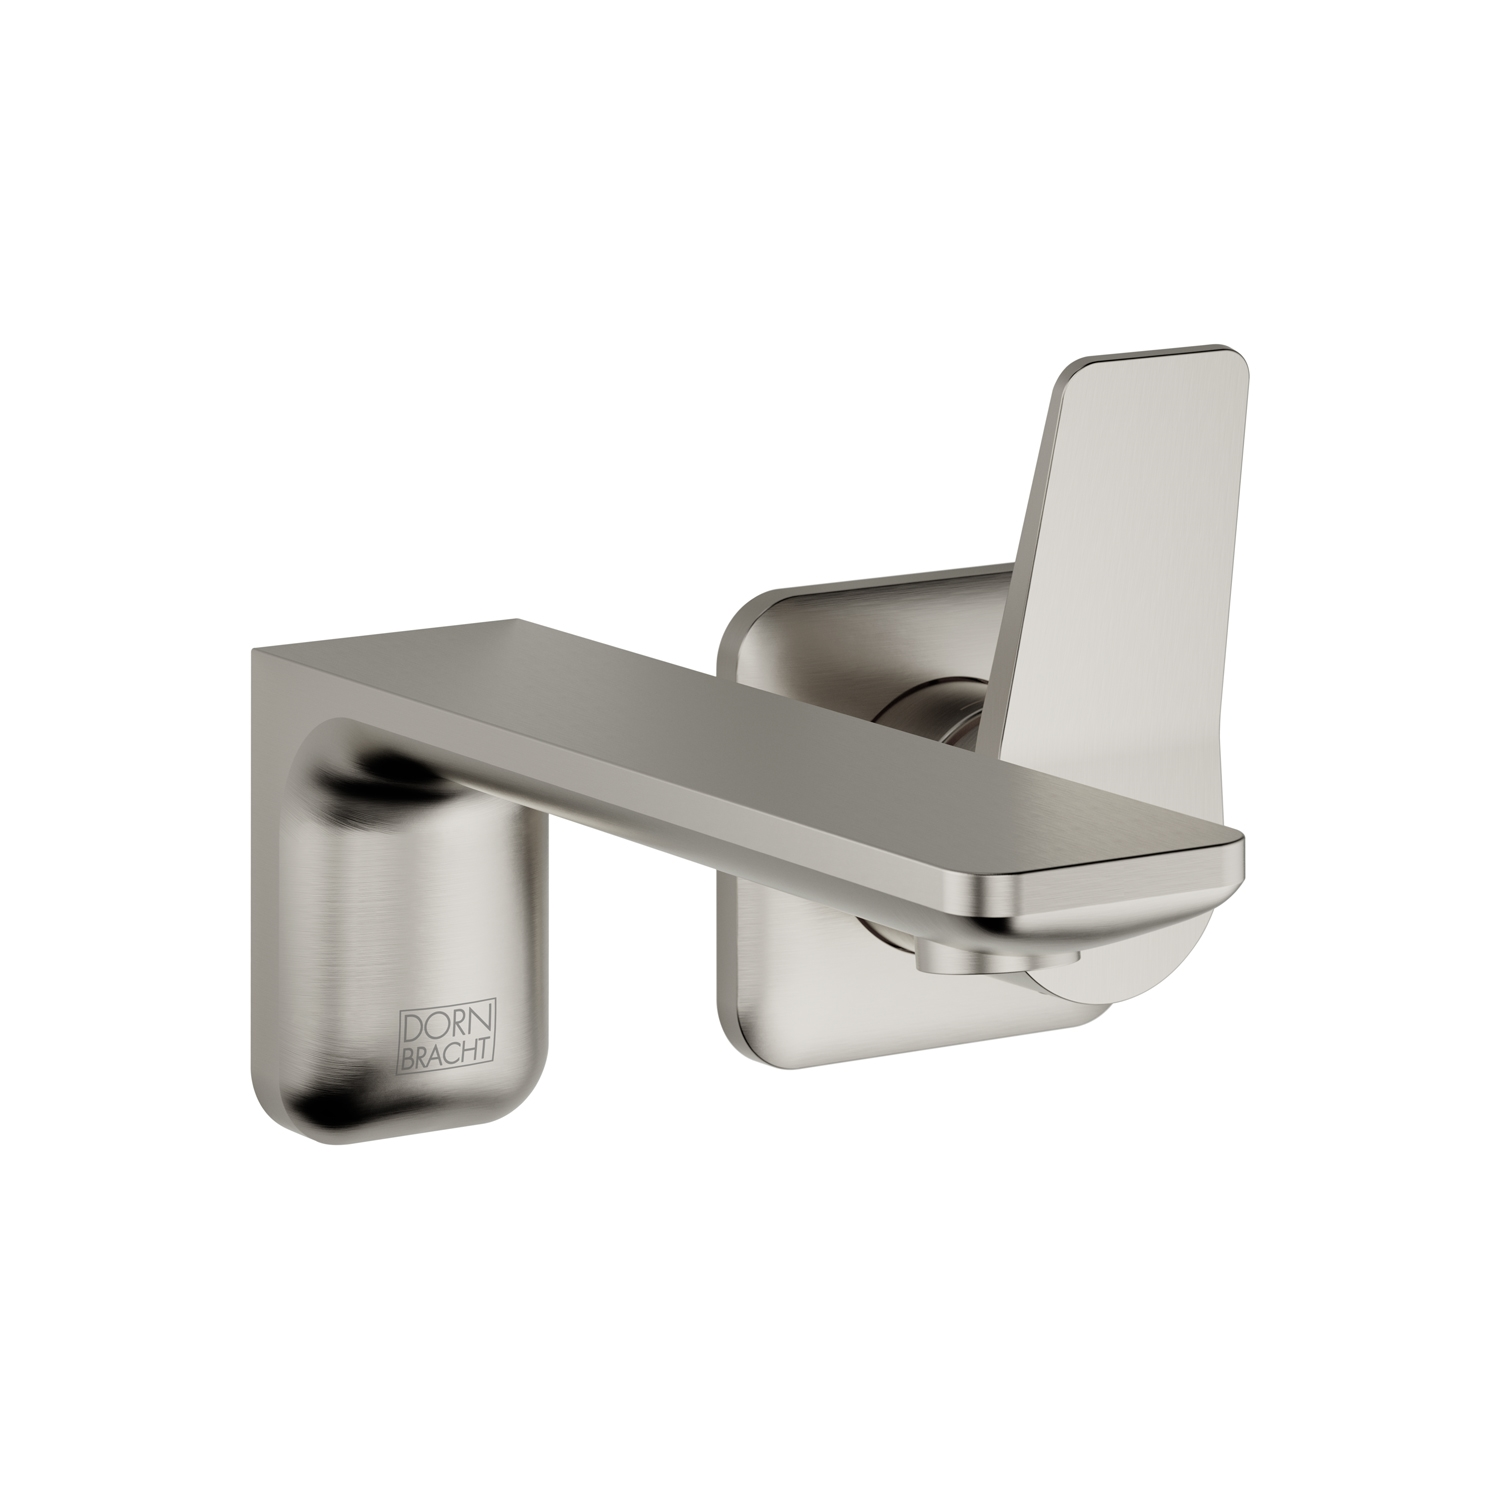 Dornbracht 36810845-06 Lisse Wall-Mounted Single-Lever Mixer without Drain - Platinum Matte